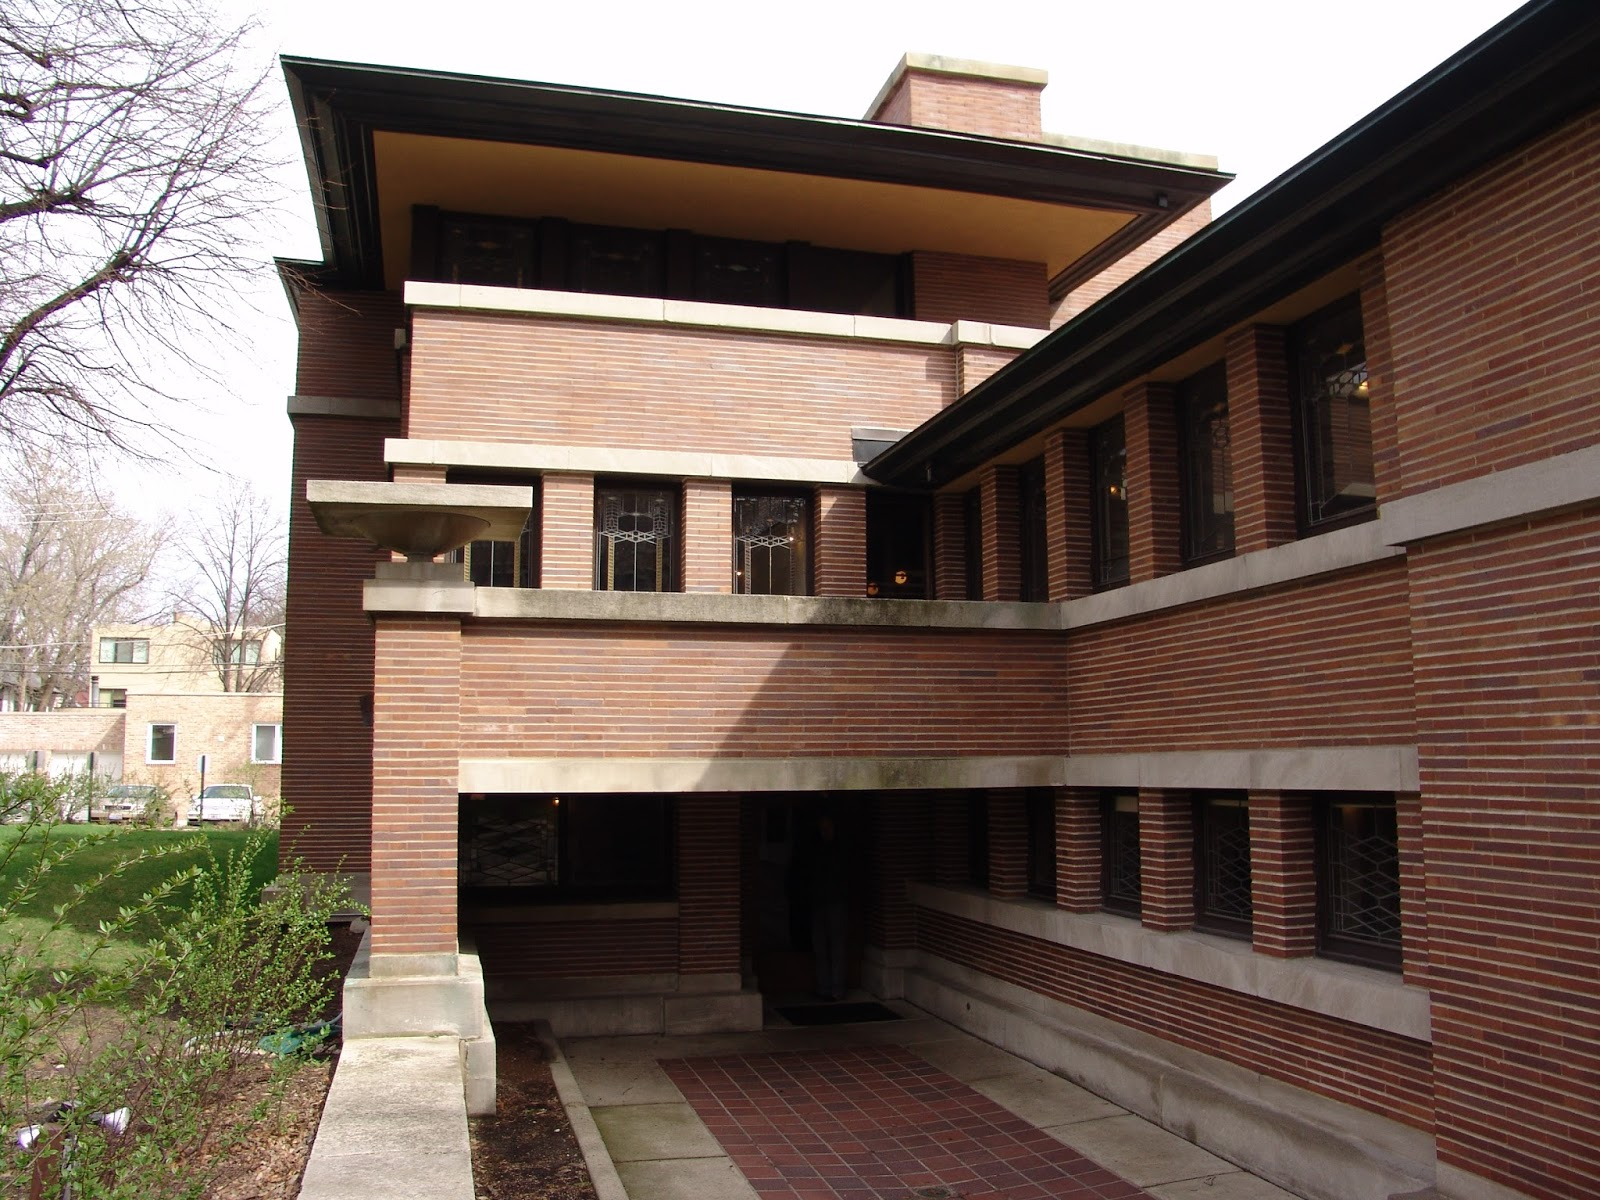 frank lloyd wright organic architecture essay Frank lloyd wright served as a pioneer through his career as an architect, inspiring many aspects of american architecture today he accomplished this thro.